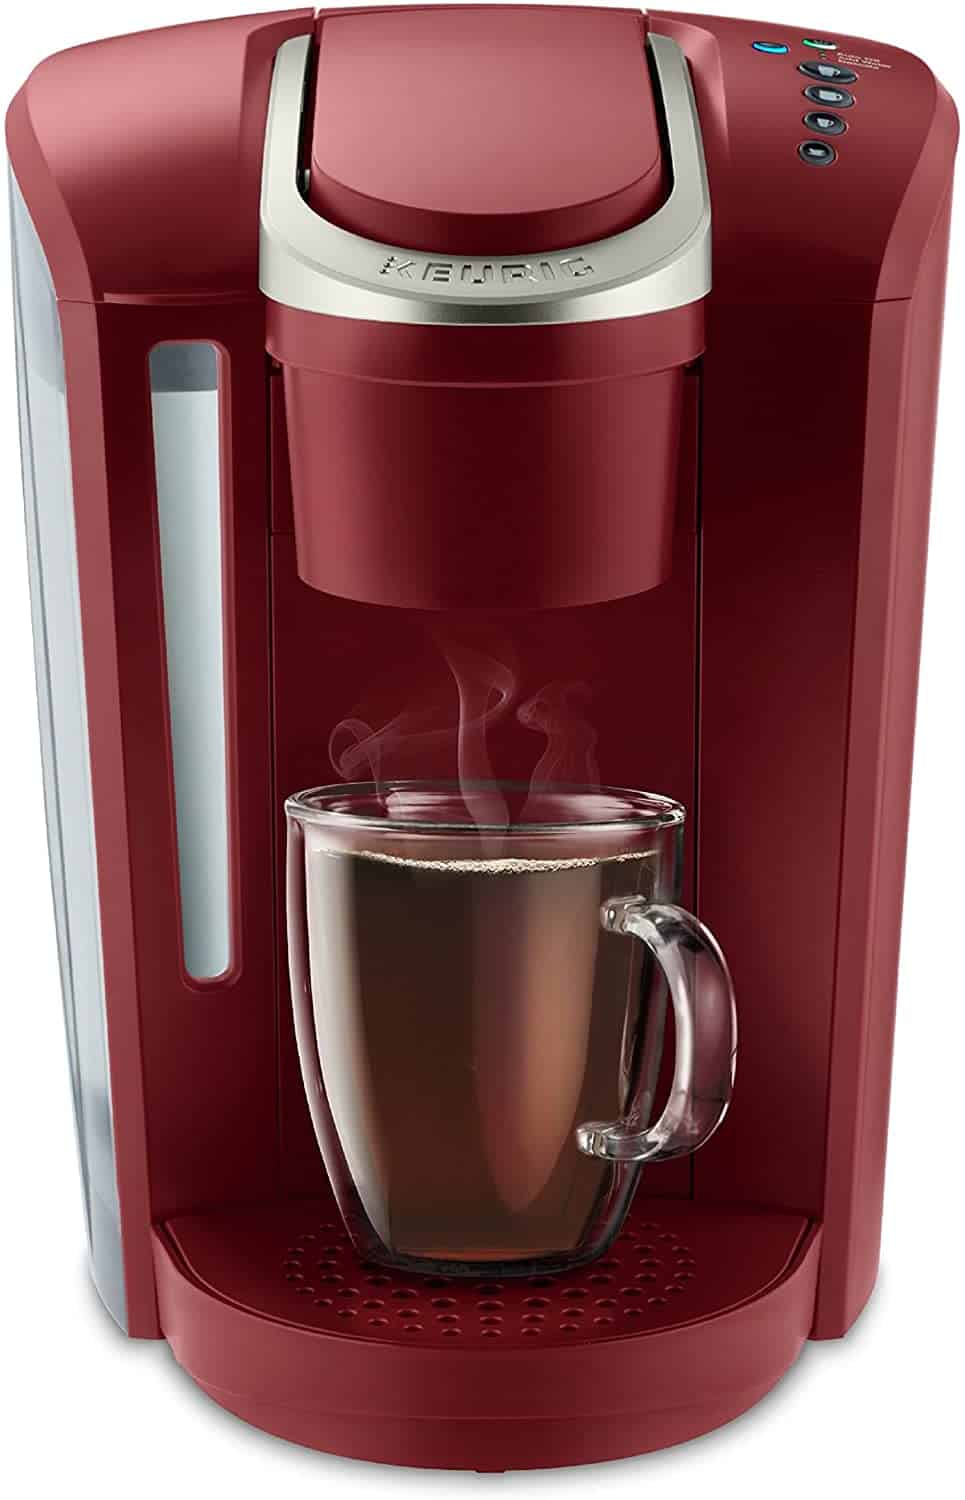 Red K-Select Coffee Maker